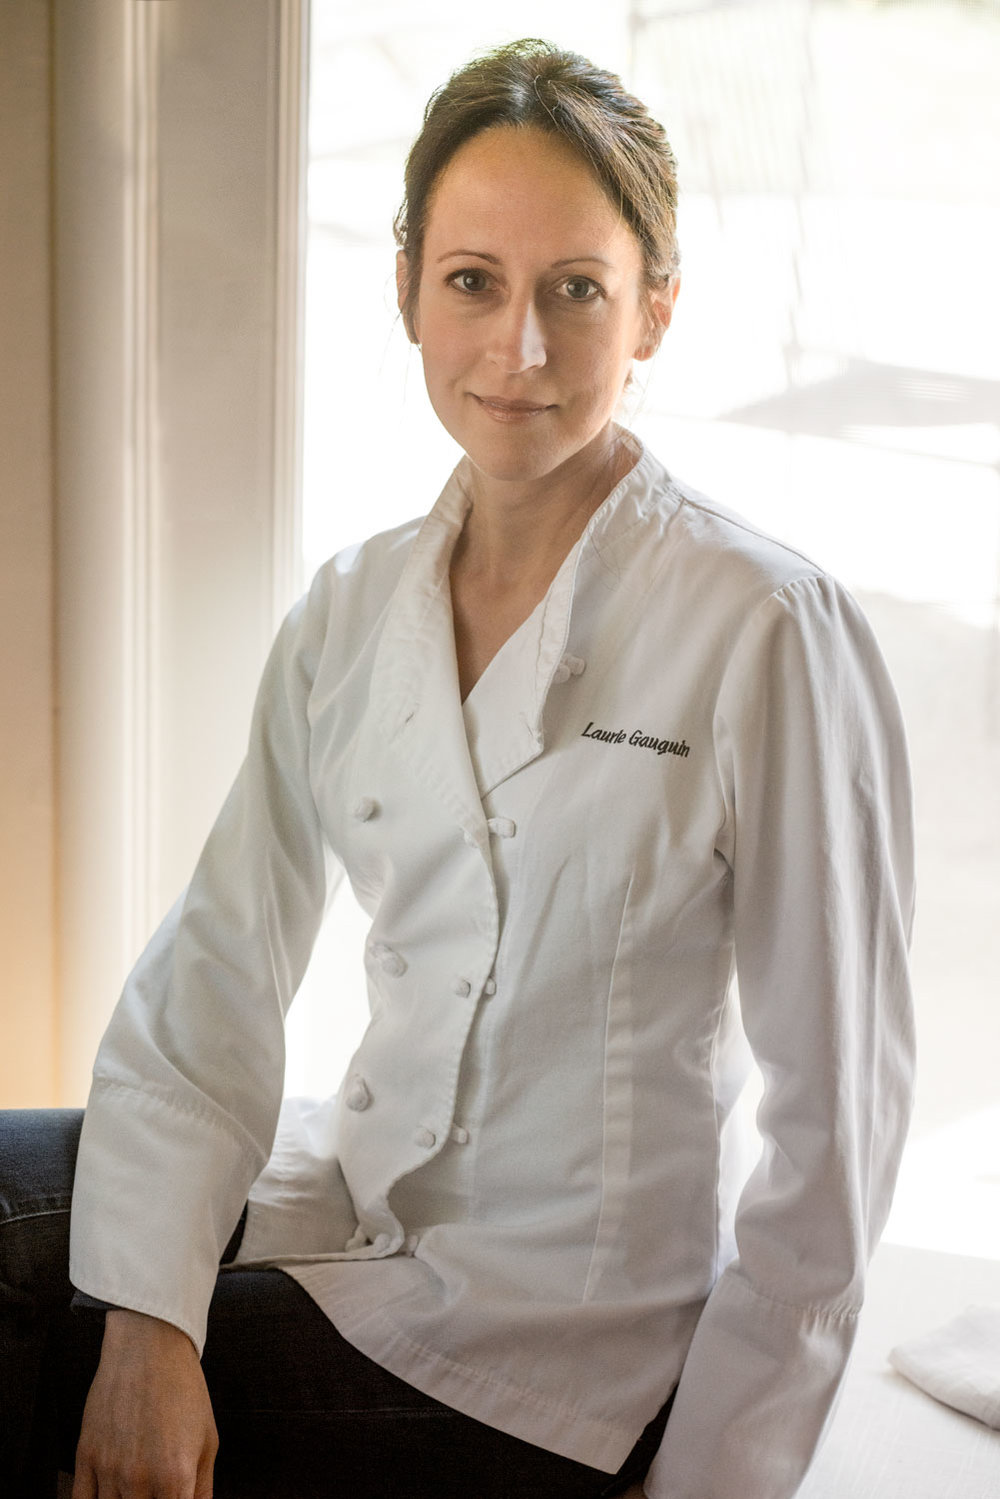 laurie-chef-portrait-retouched-PHS6542.jpg